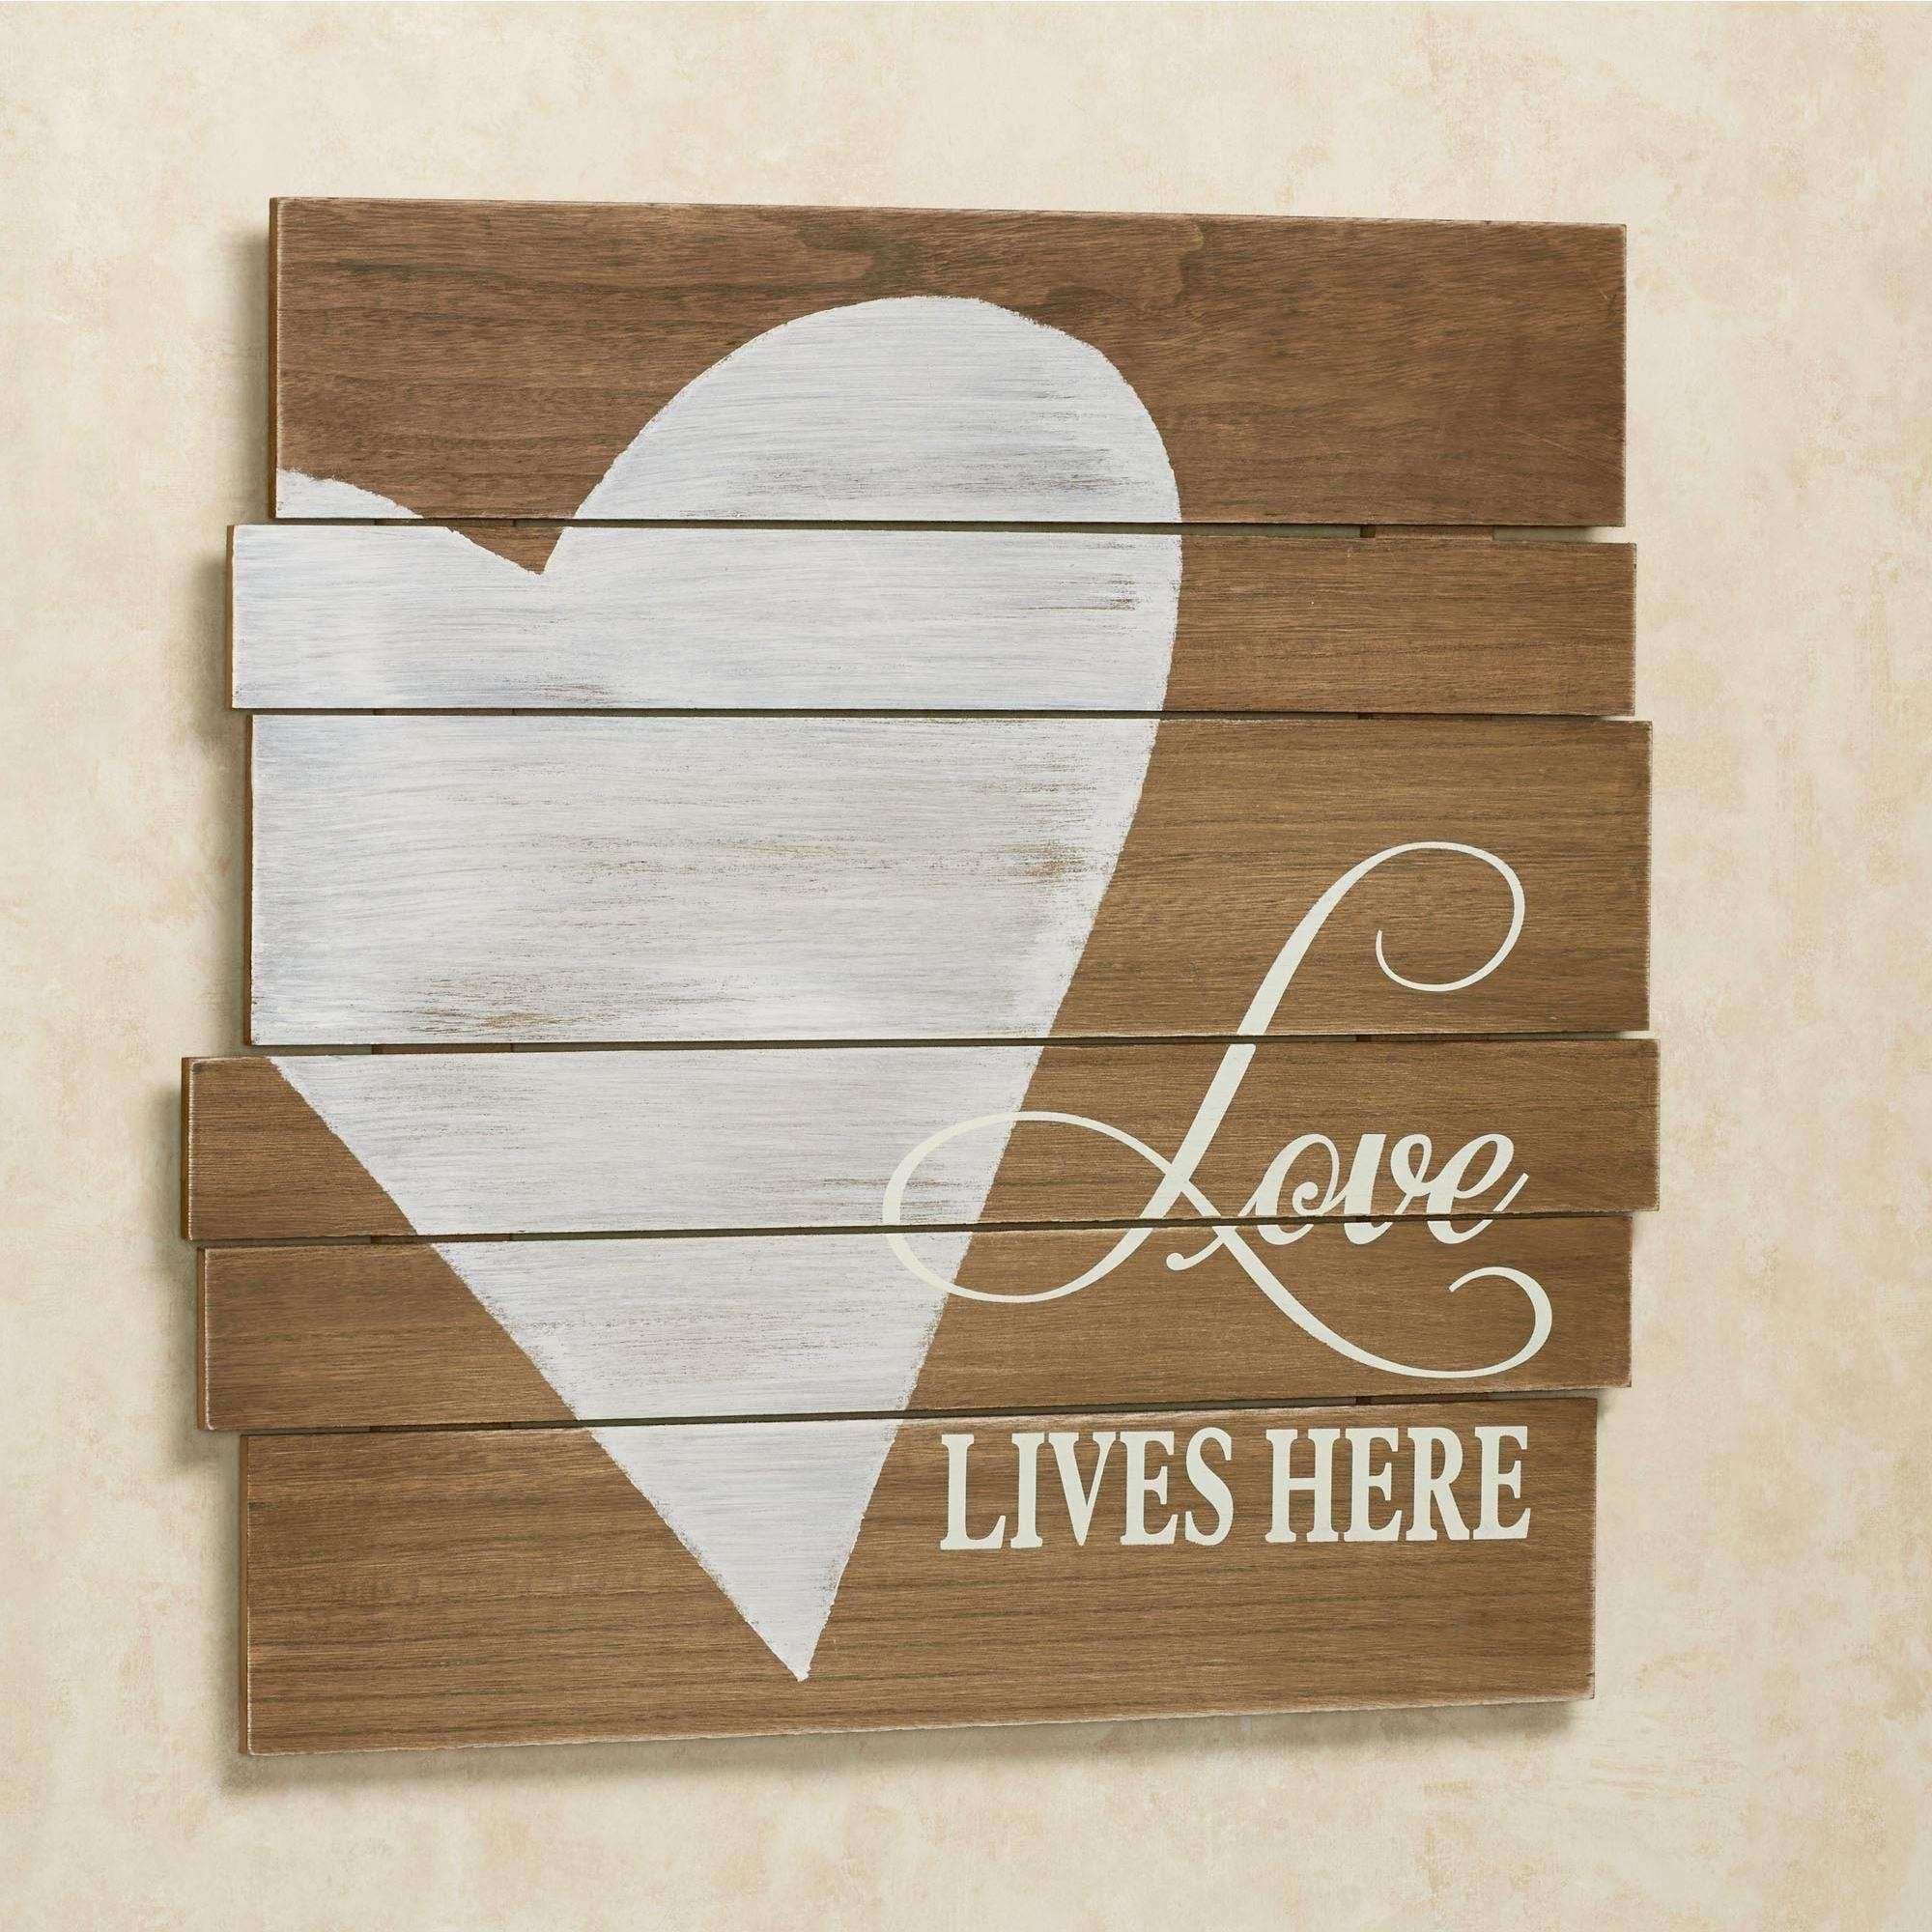 20 Collection of Inspirational Wall Plaques